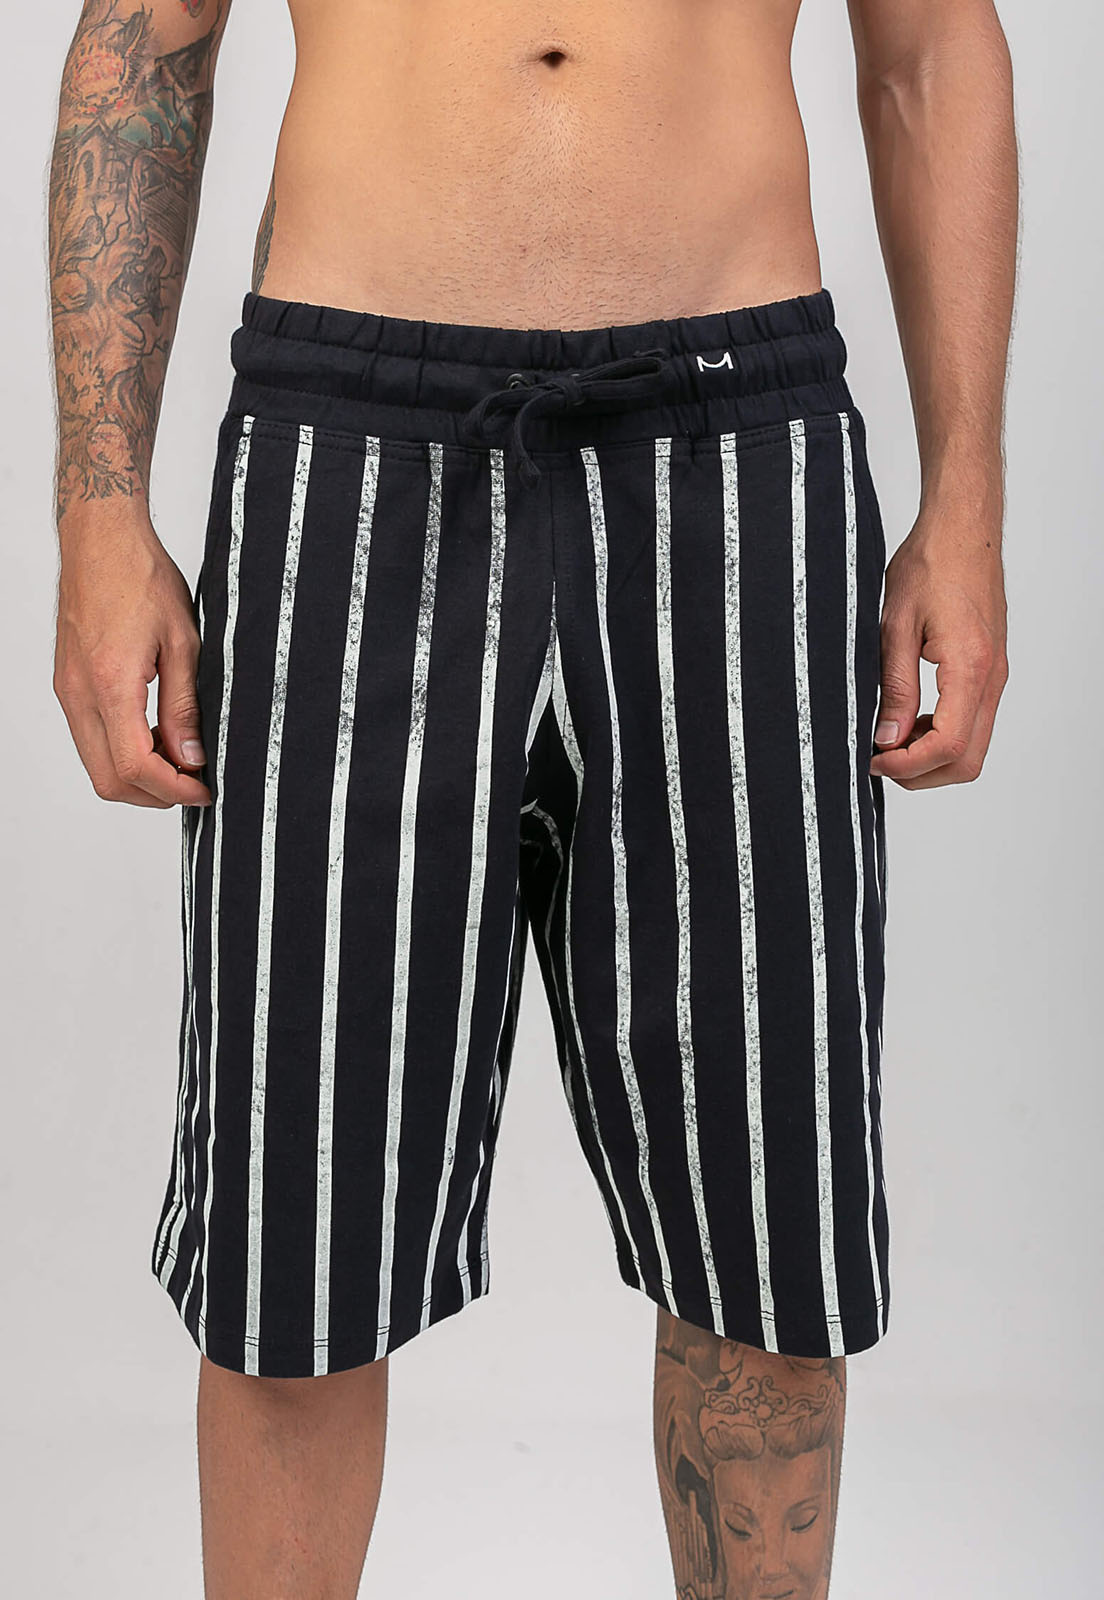 Bermuda Black Striped Melty  - melty surf & Co.